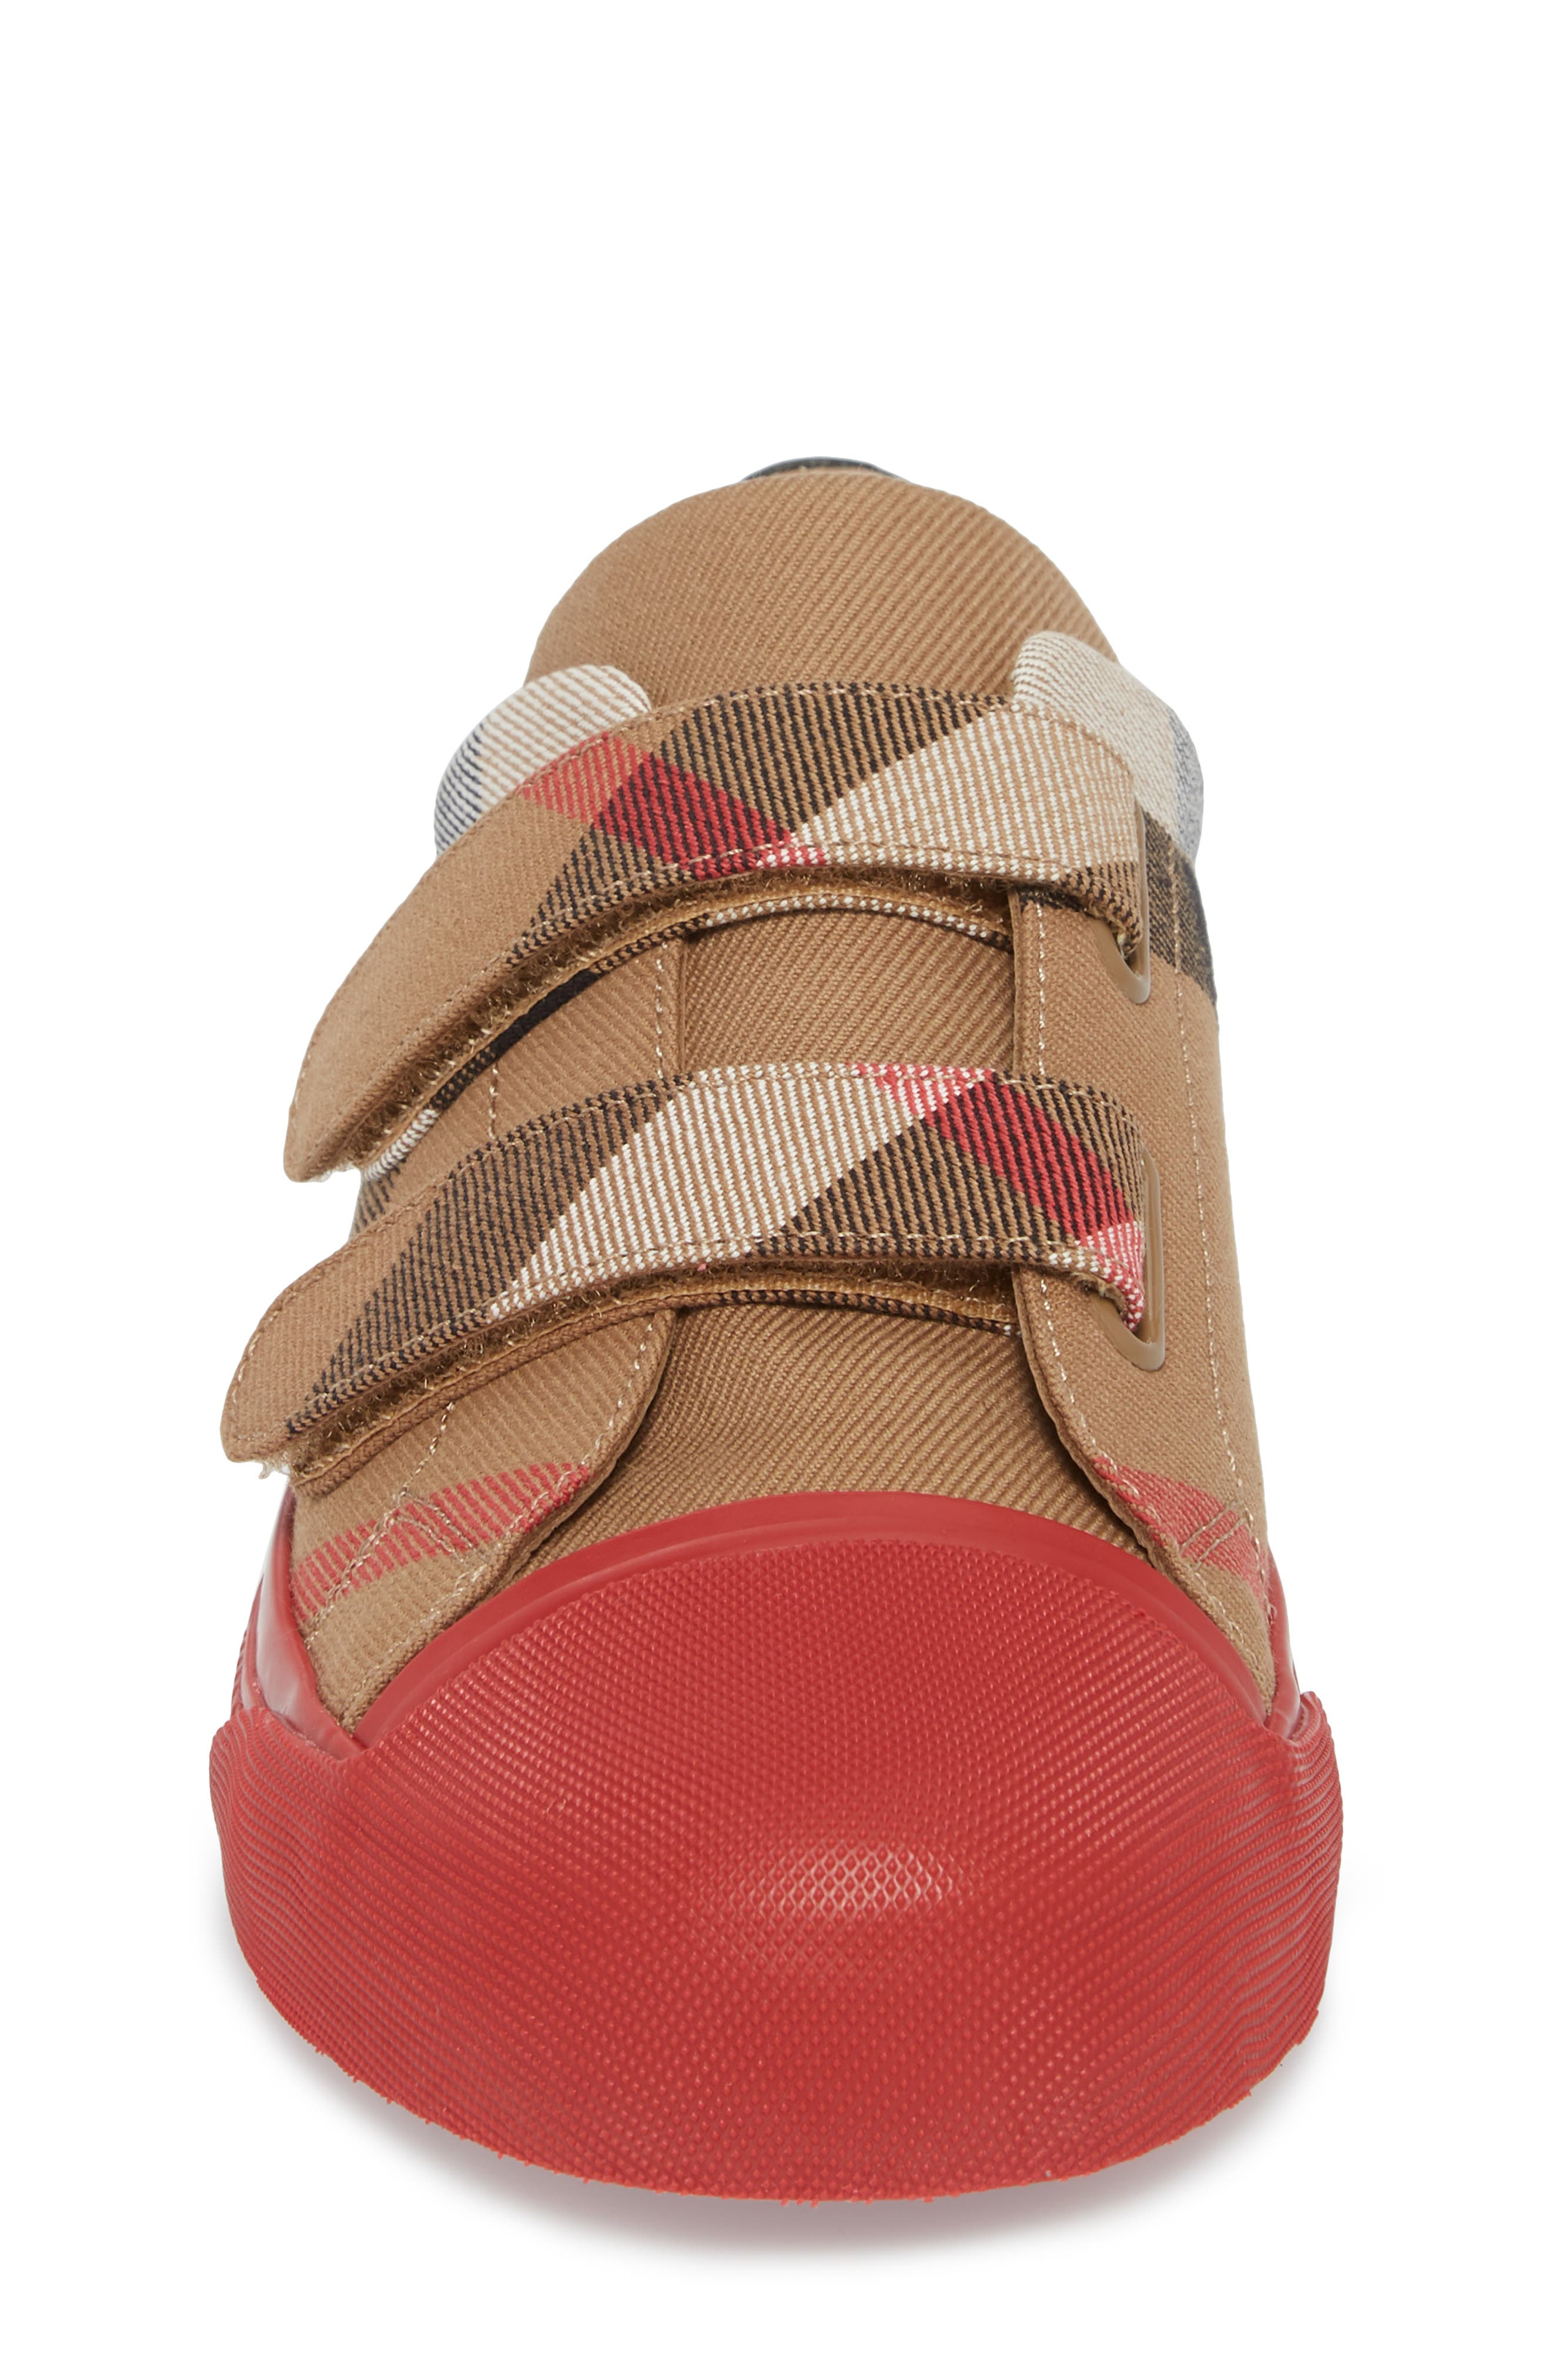 Belside Sneaker,                             Alternate thumbnail 4, color,                             Classic/ Parade Red